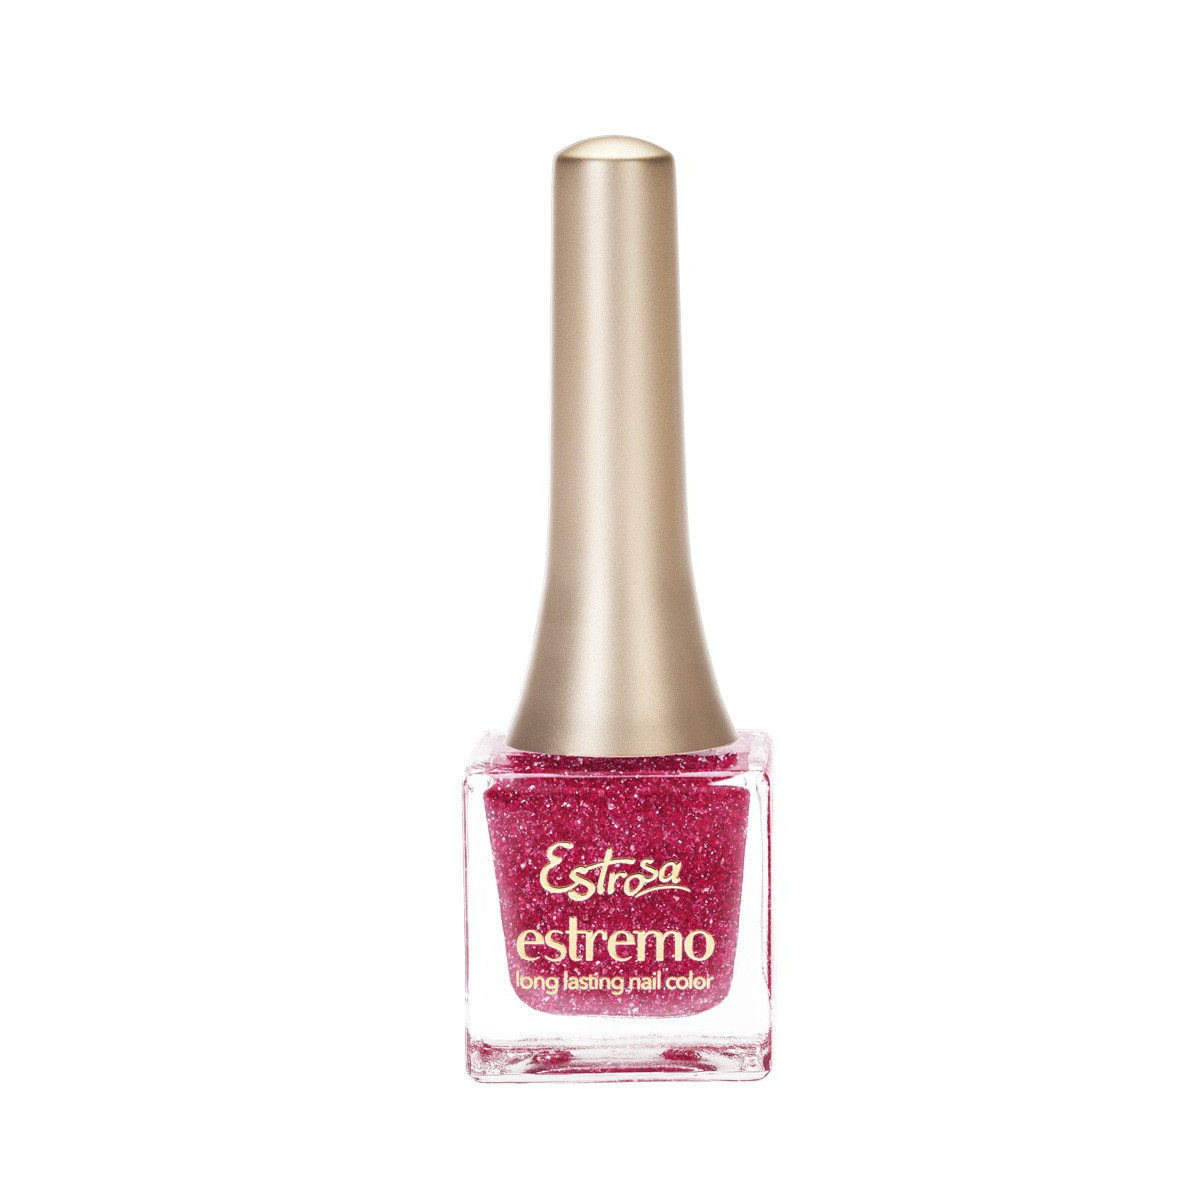 SMALTO LUNGA DURATA ESTREMO - SPACE 12ML glitter